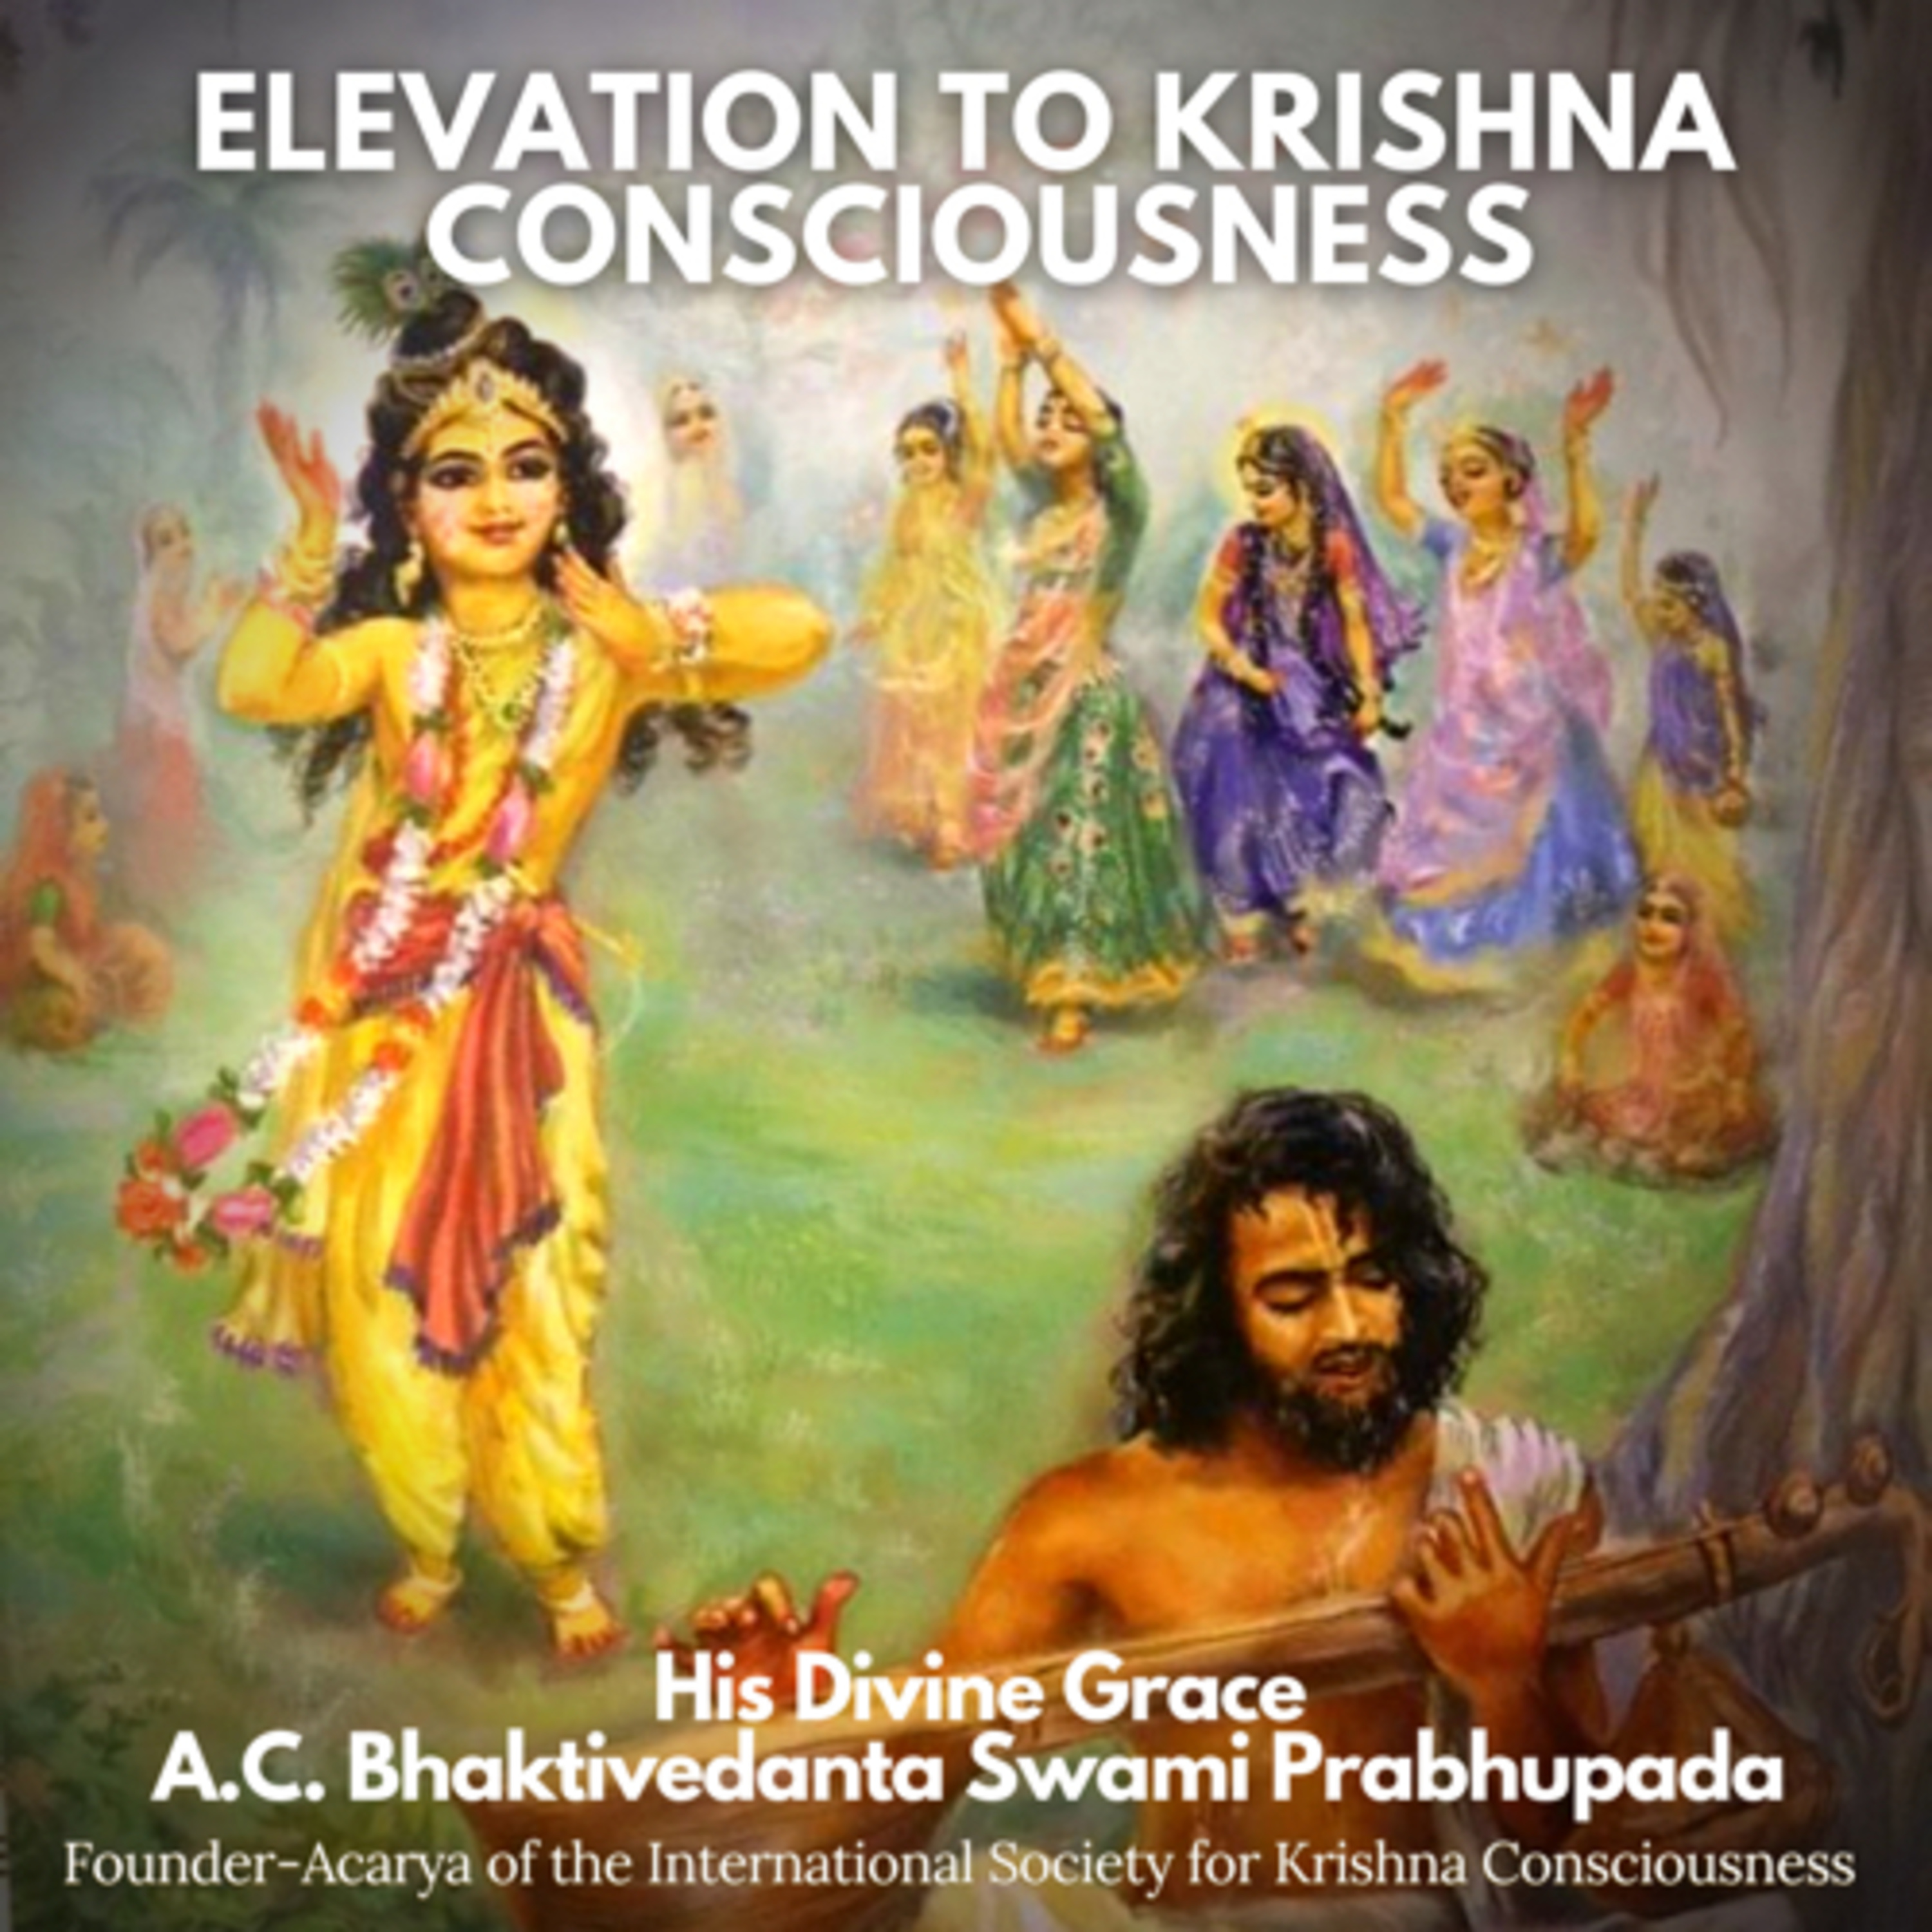 029 – Knowing the Supreme Lord, This Universe & Our Own Self (Elevation to Krishna Consciousness)